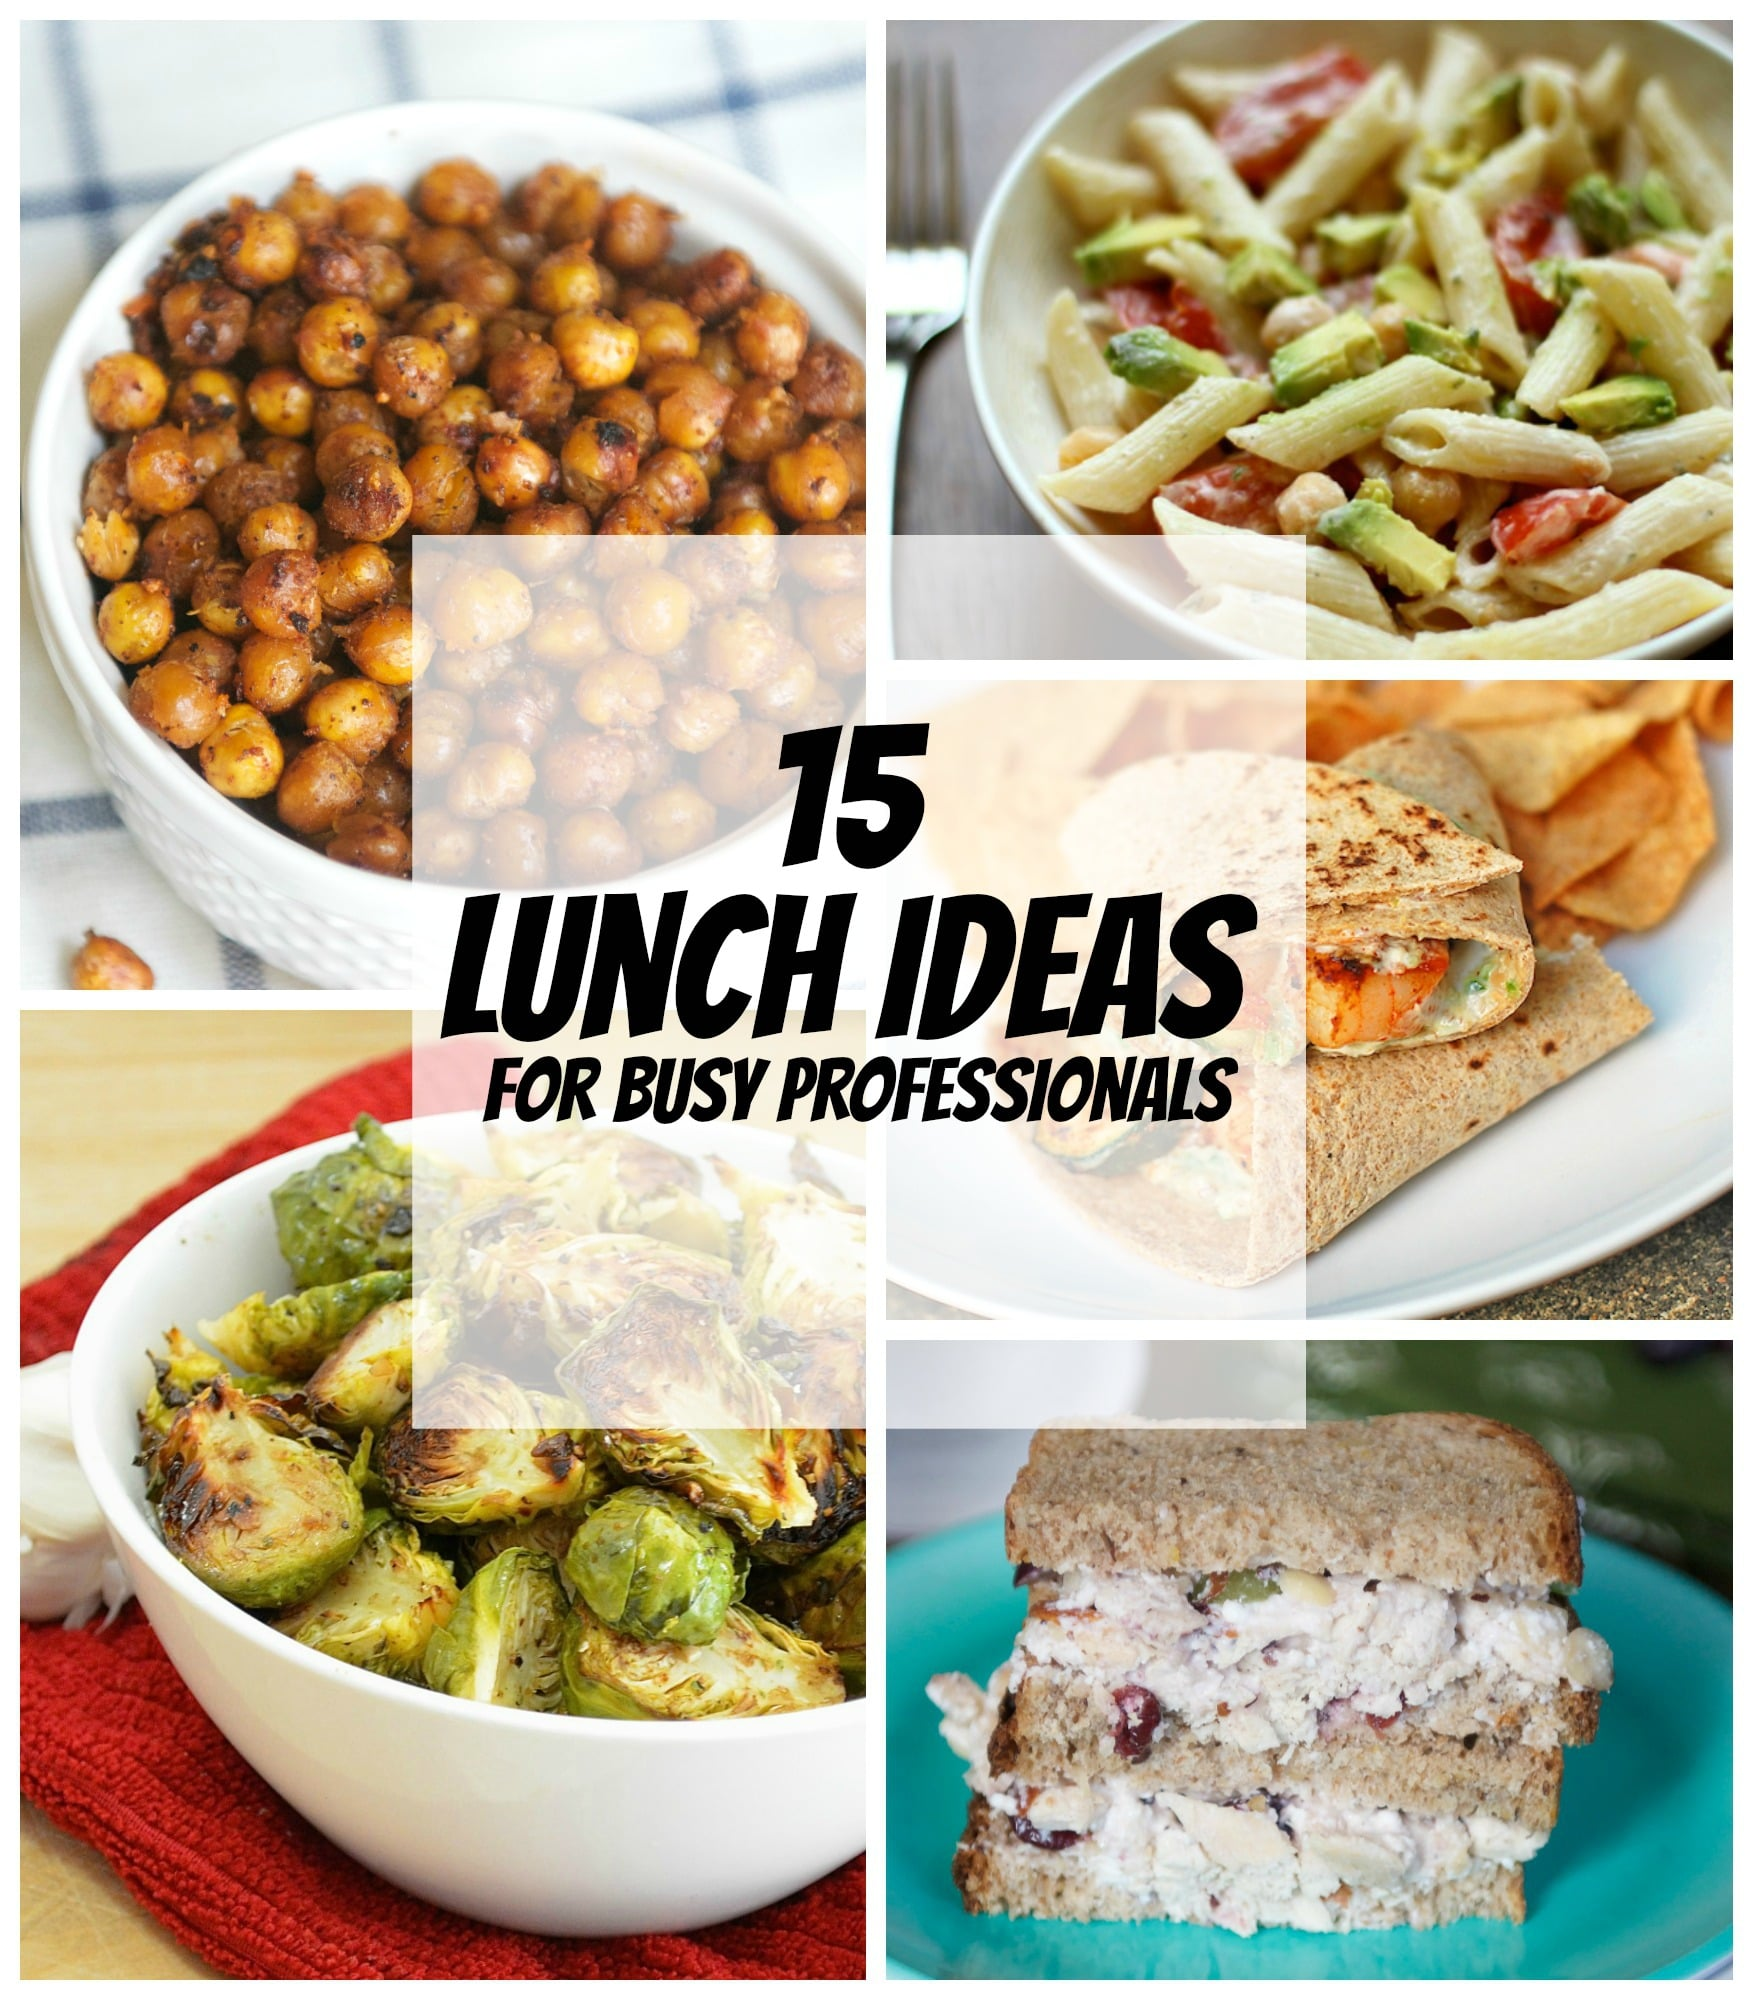 15 Lunch Ideas for Busy Professionals